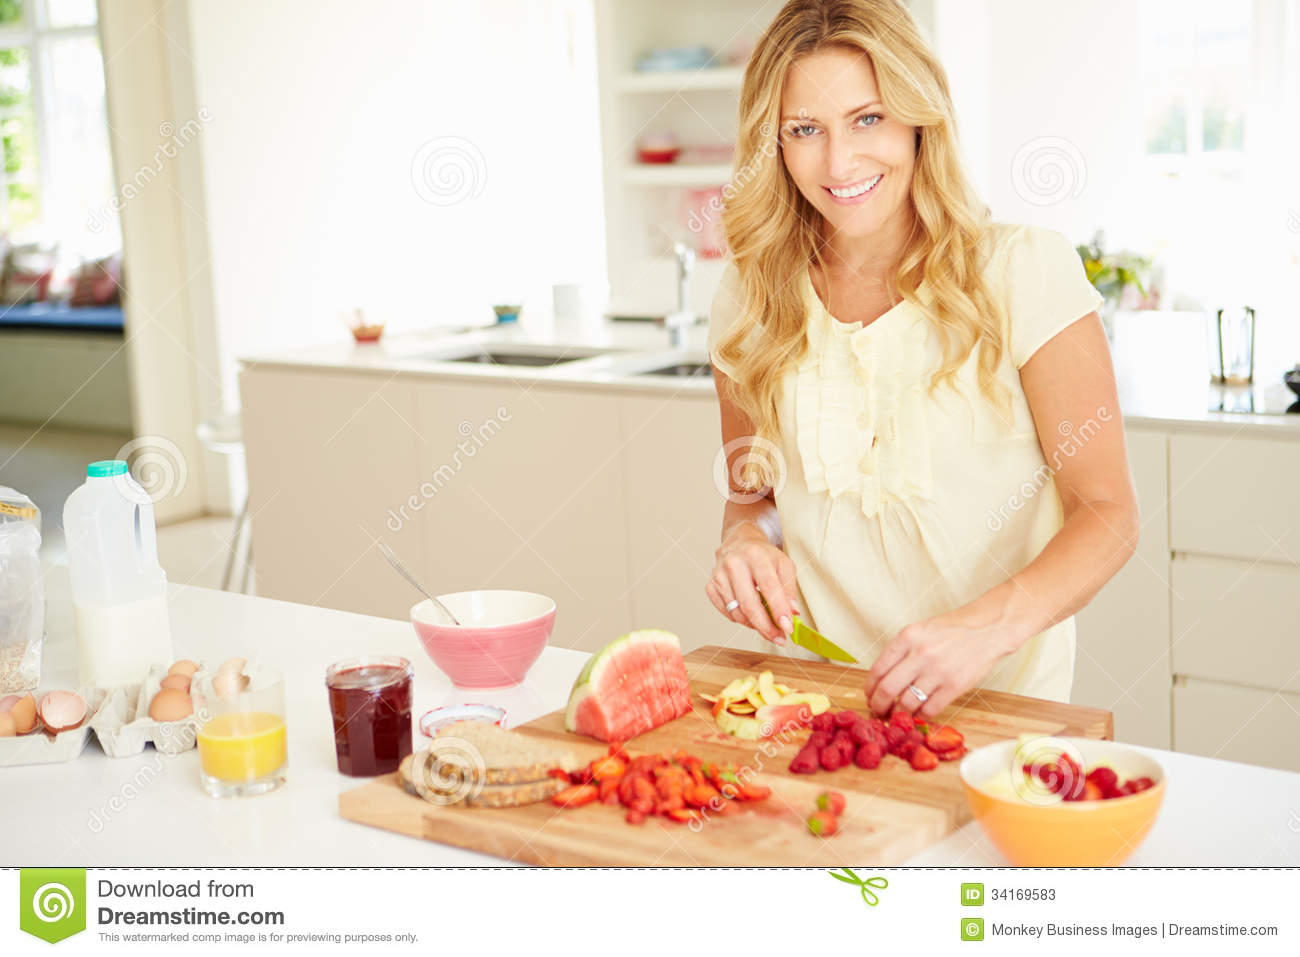 Woman Preparing Healthy Breakfast In Kitchen Stock Image - Image of ...